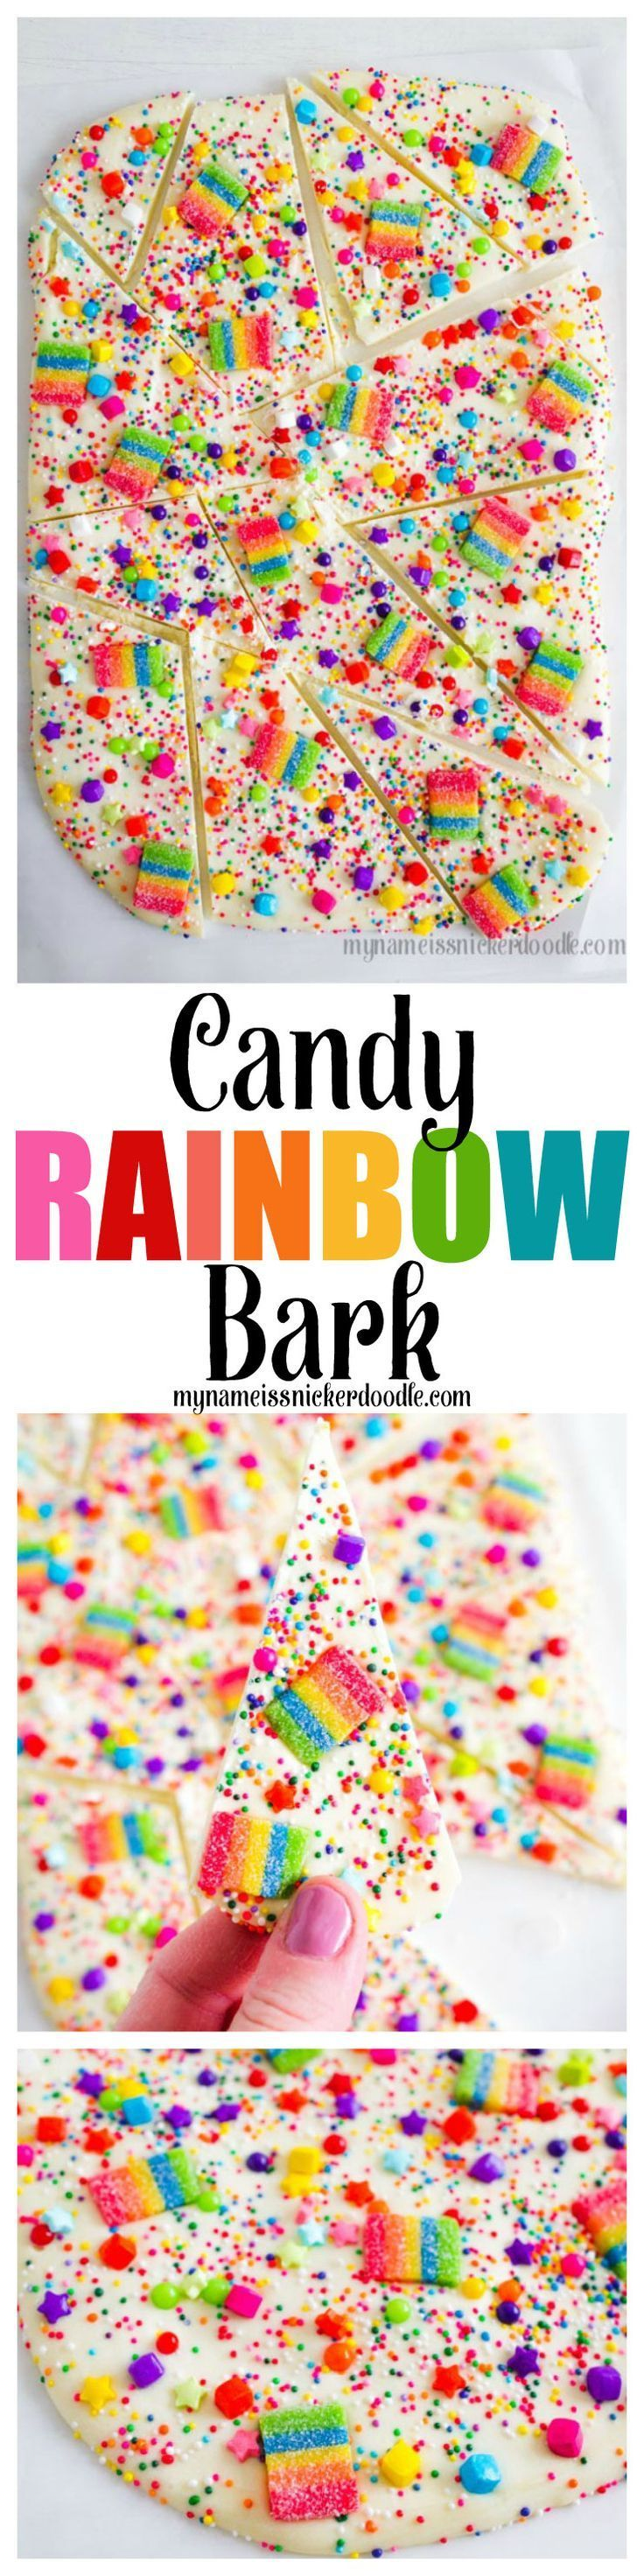 Oh my adorableness!  This Candy Rainbow Bark would be perfect for a birthday party, St. Patrick's Day or just to cheer someone up!  |  http://mynameissnickerdoodle.com